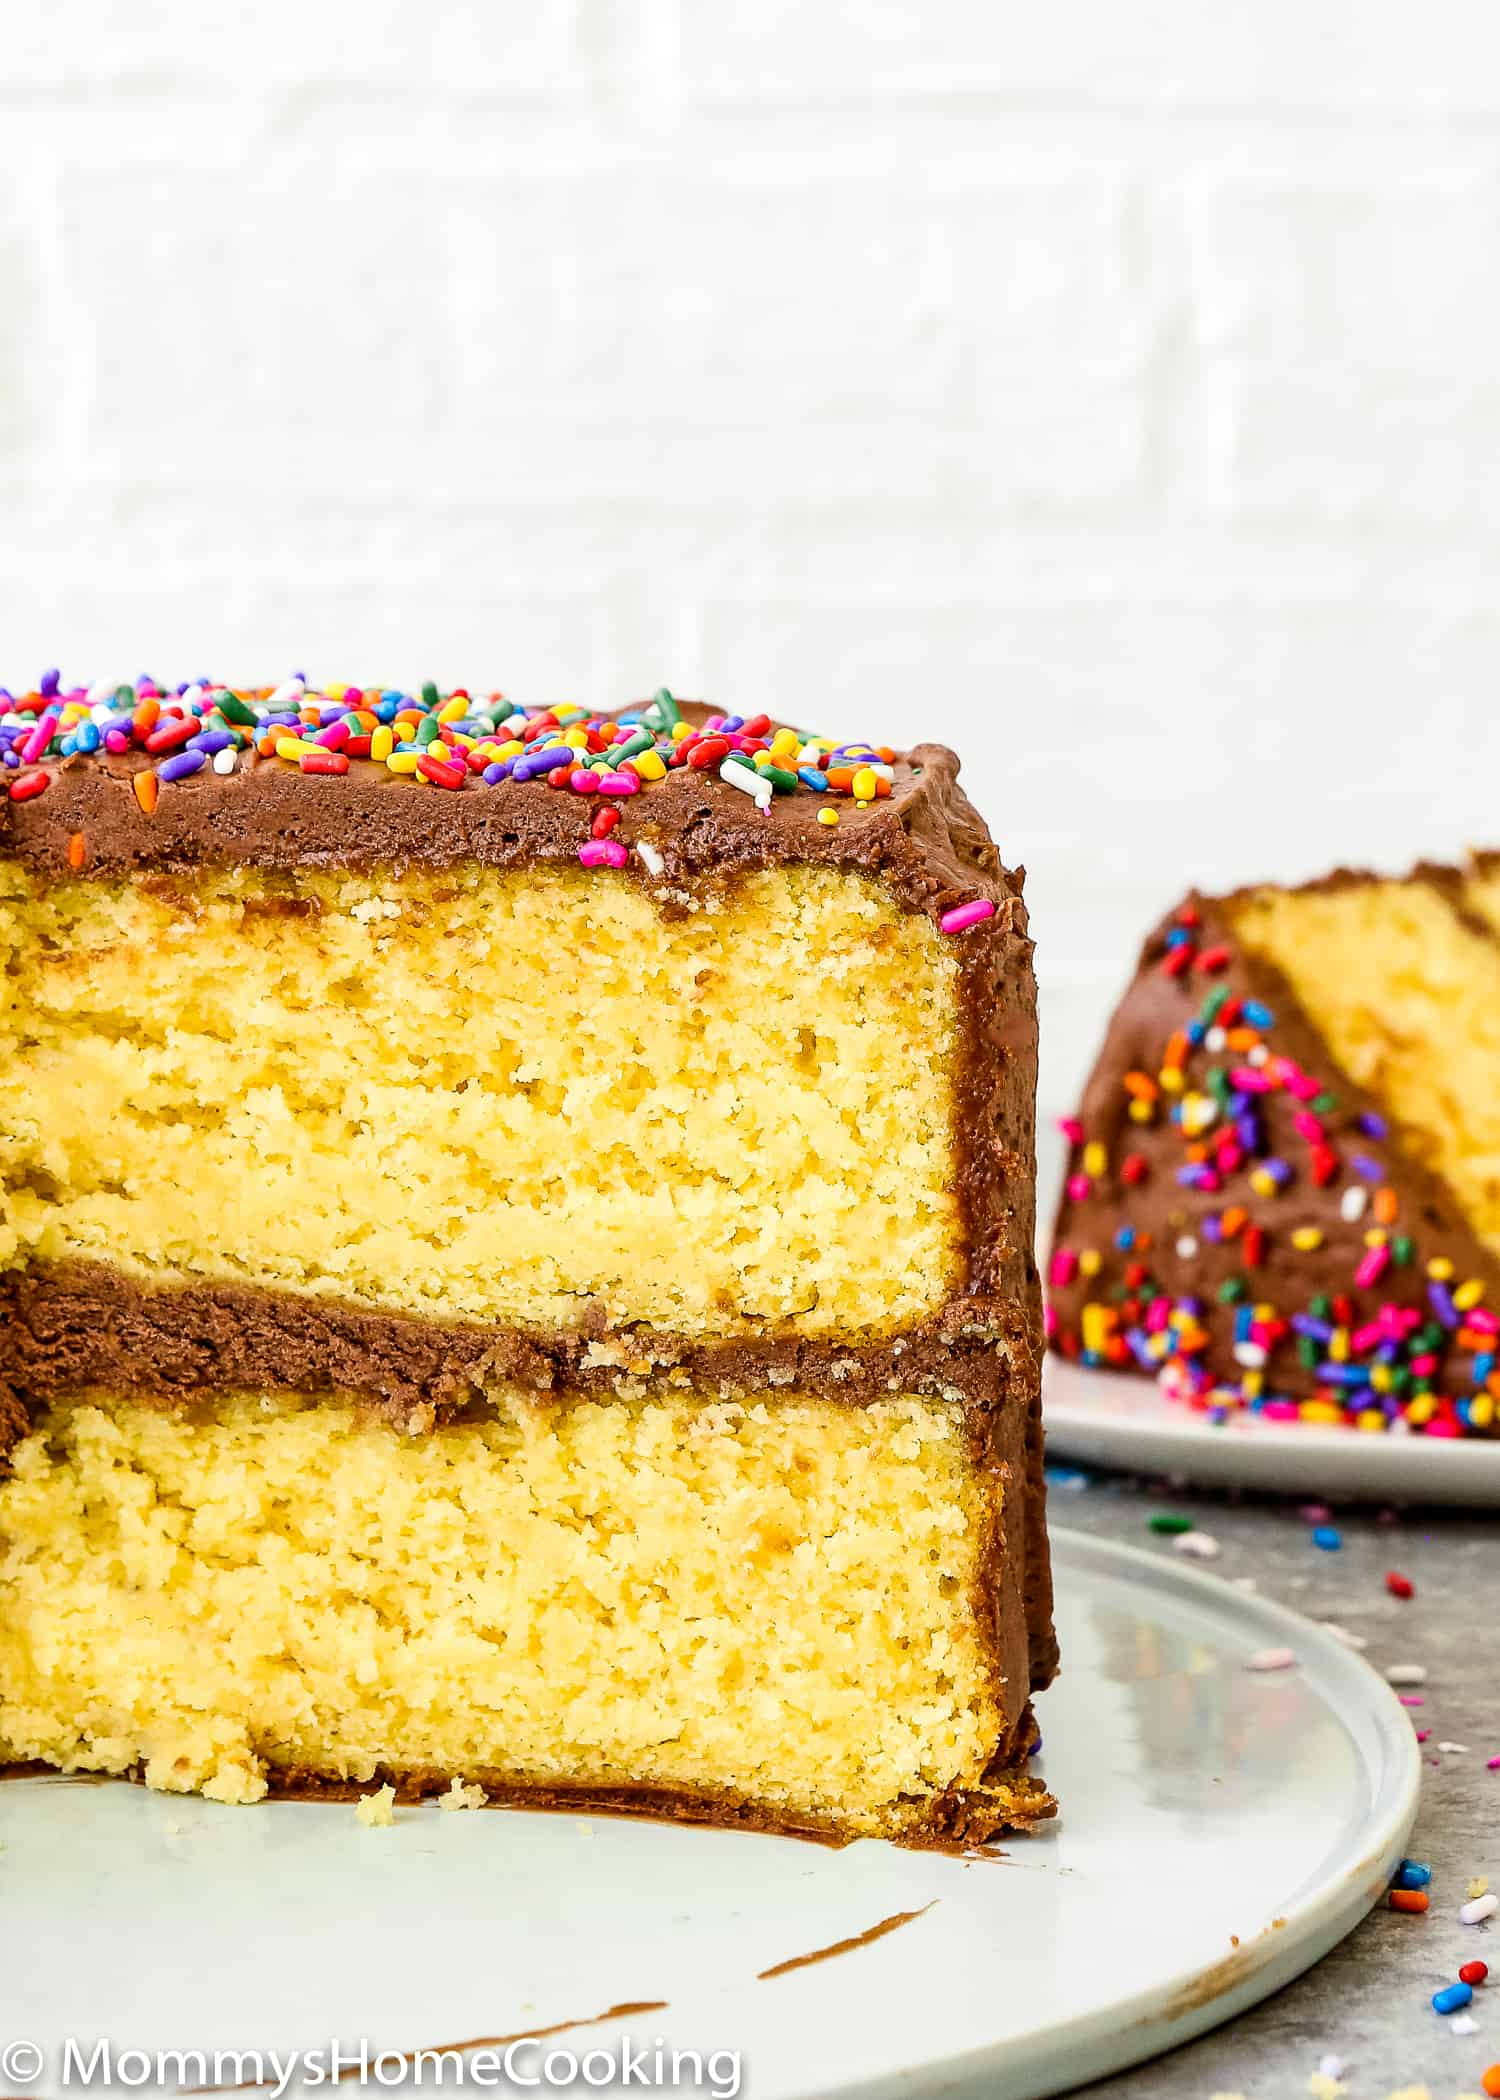 Do you or someone you love have egg allergy? Or did you just run out of eggs? Don't panic! You still can make that box cake that you are craving for. Learn my trick about How to Make a Cake Mix Box without Eggs. Pure convenience and amazingly delicious! https://mommyshomecooking.com